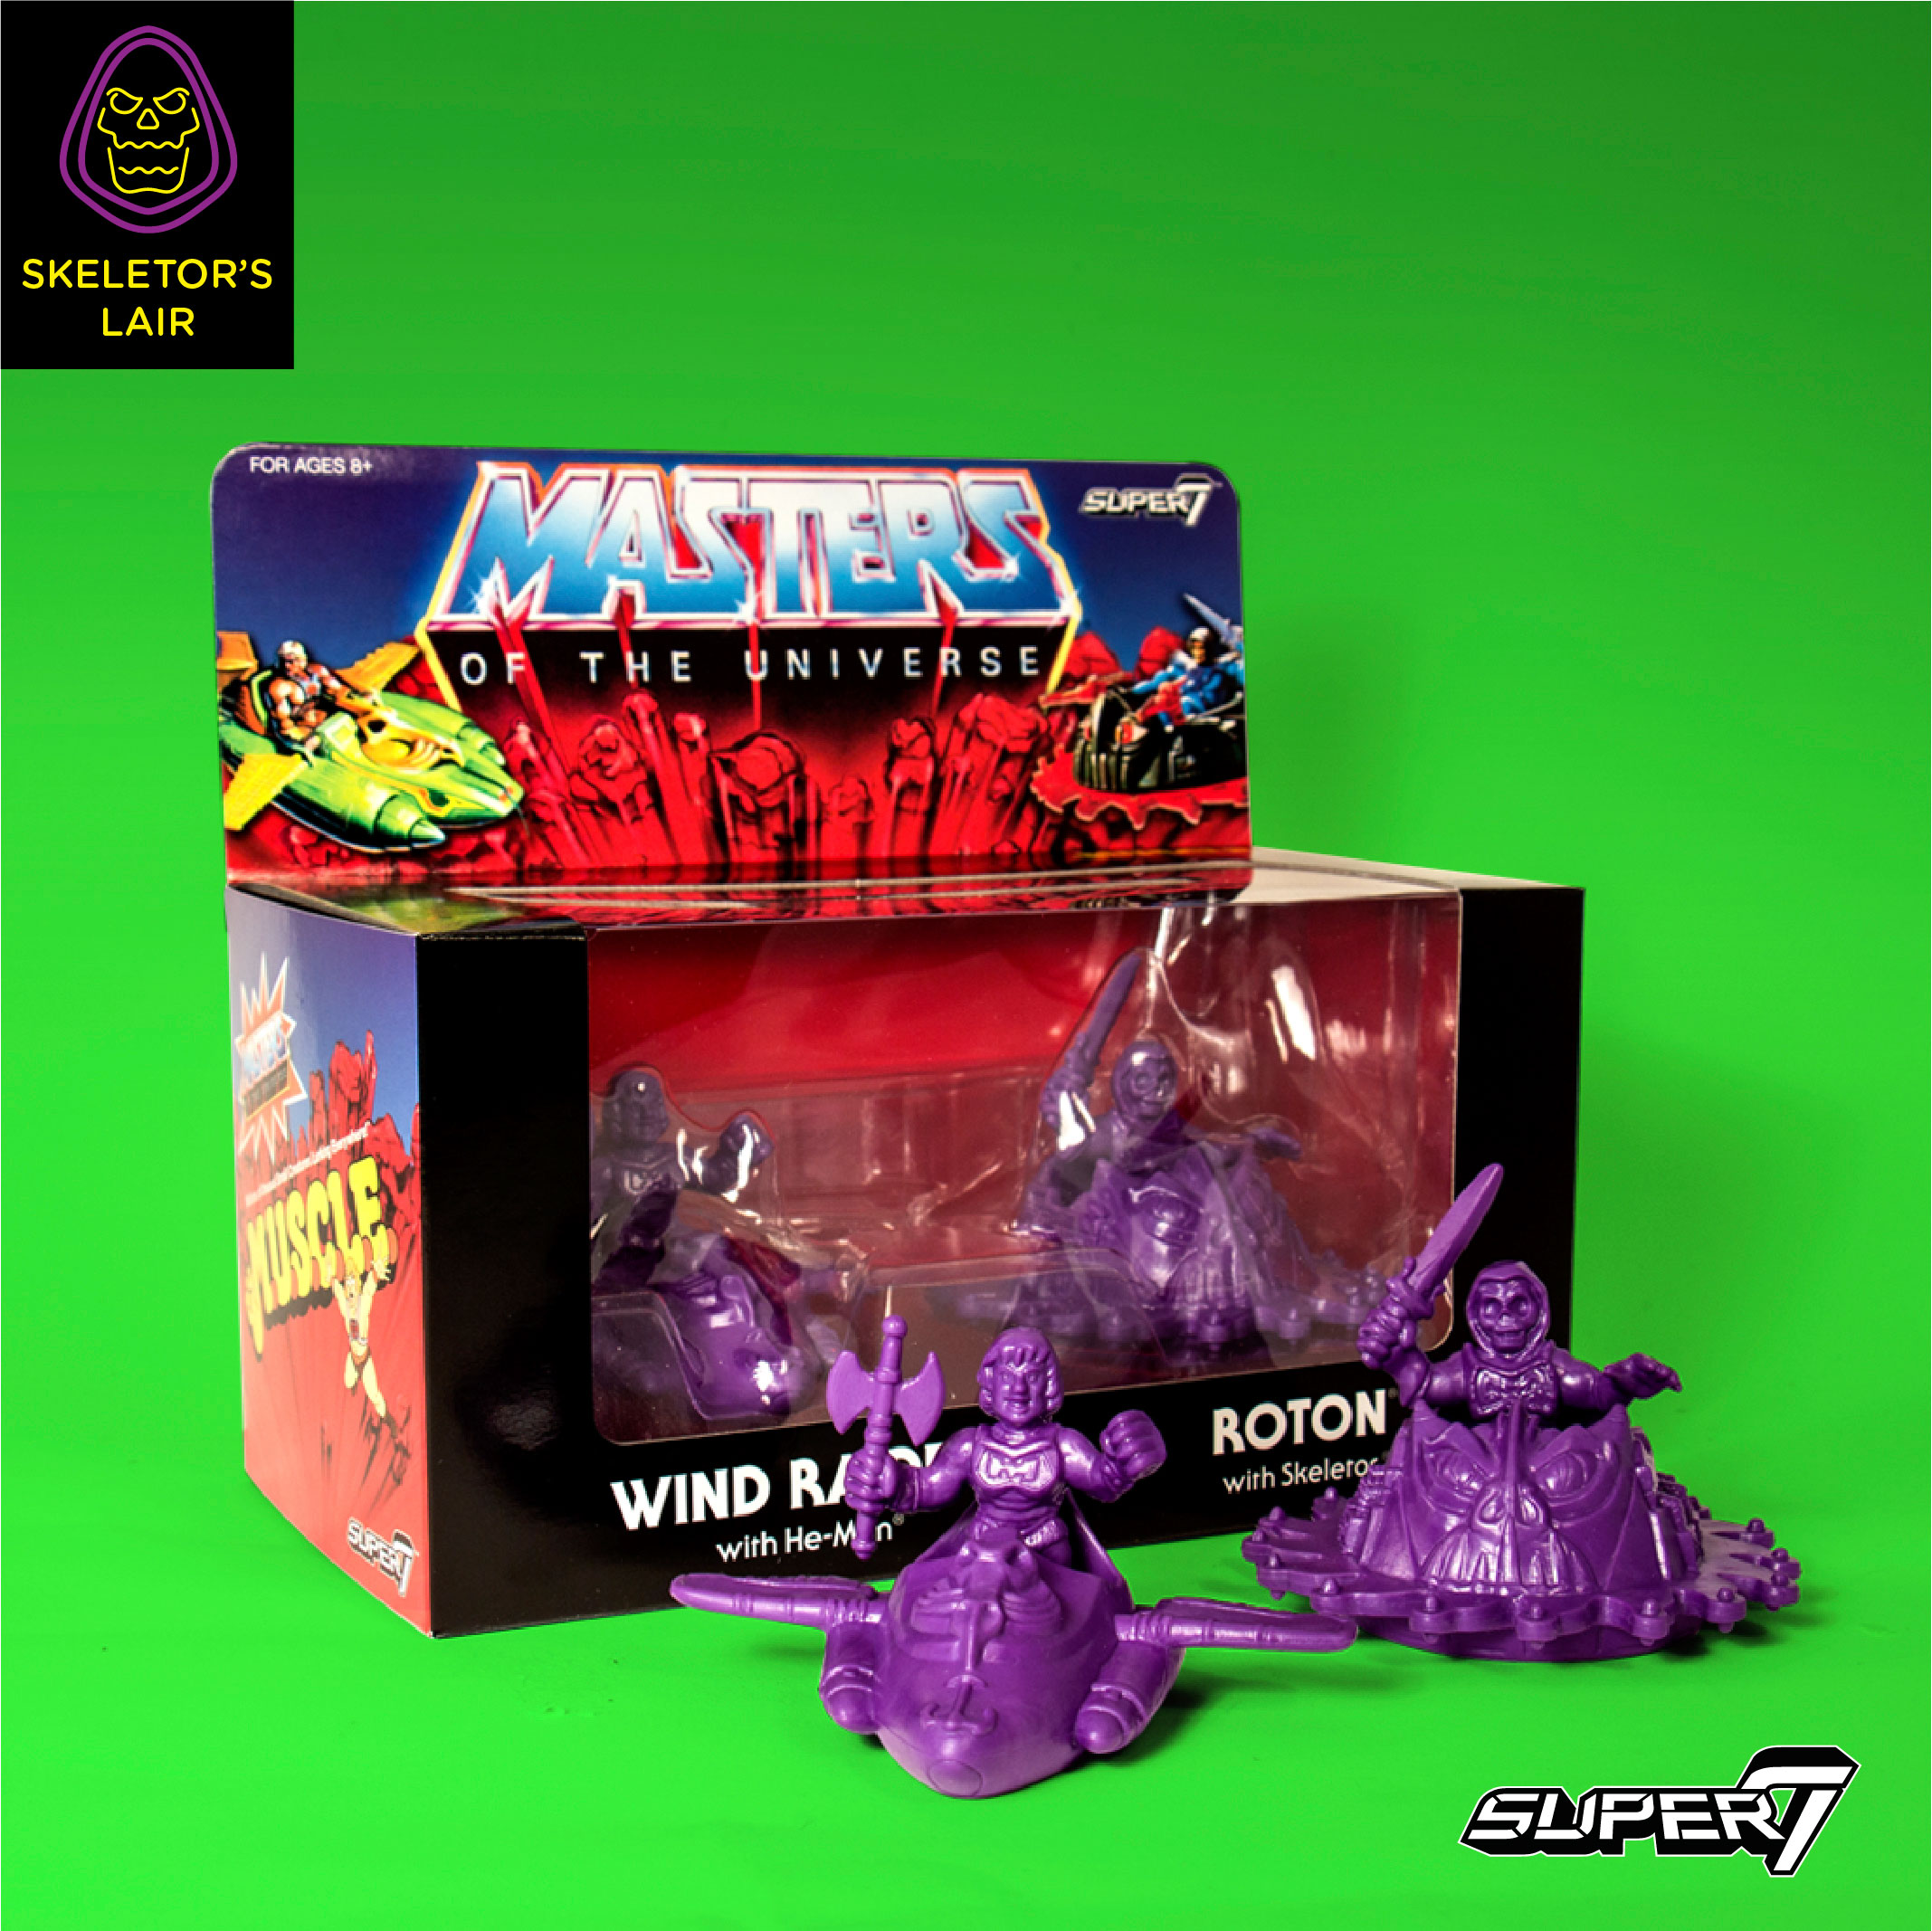 super7-motu-sdcc-comic-con-2017-exclusive-3